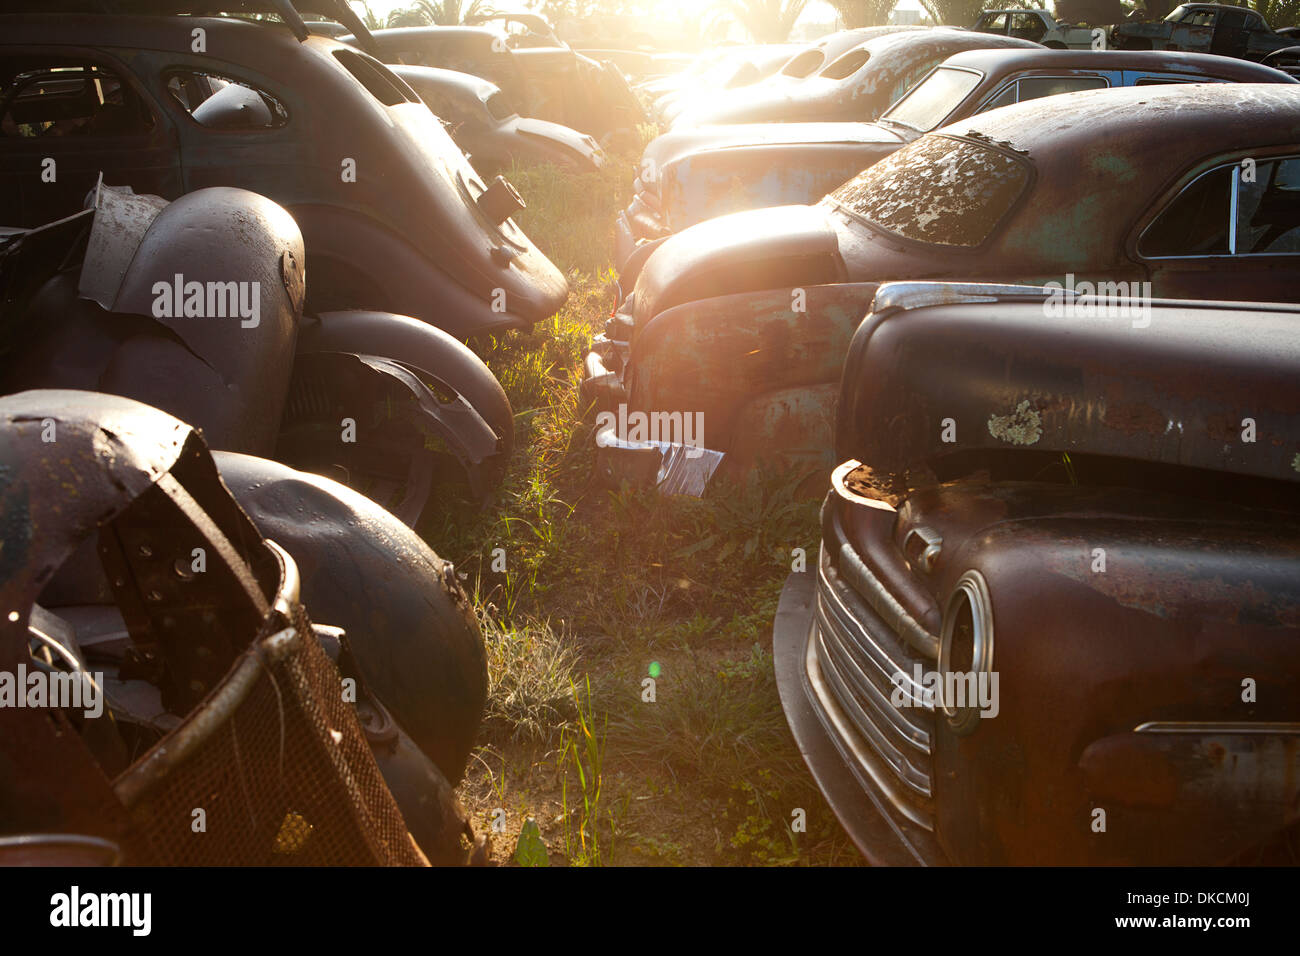 Vintage cars abandoned in scrap yard - Stock Image